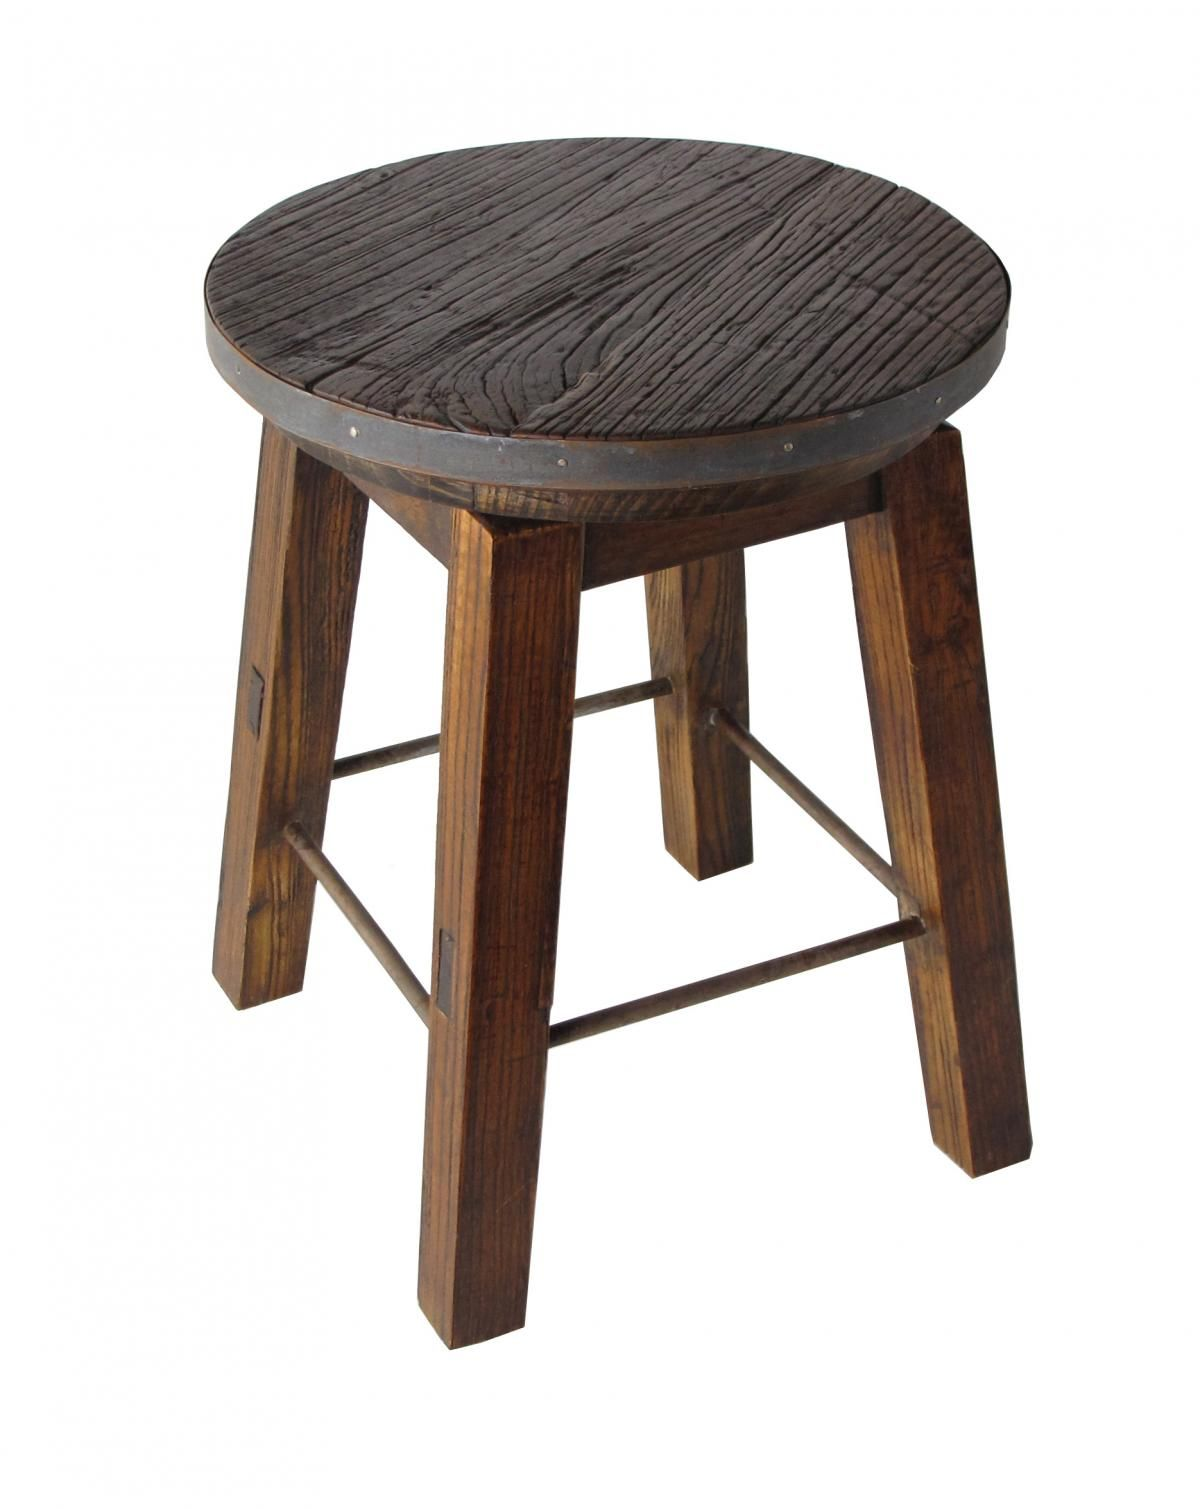 "Side table/ stool- 20"" h Product Details 